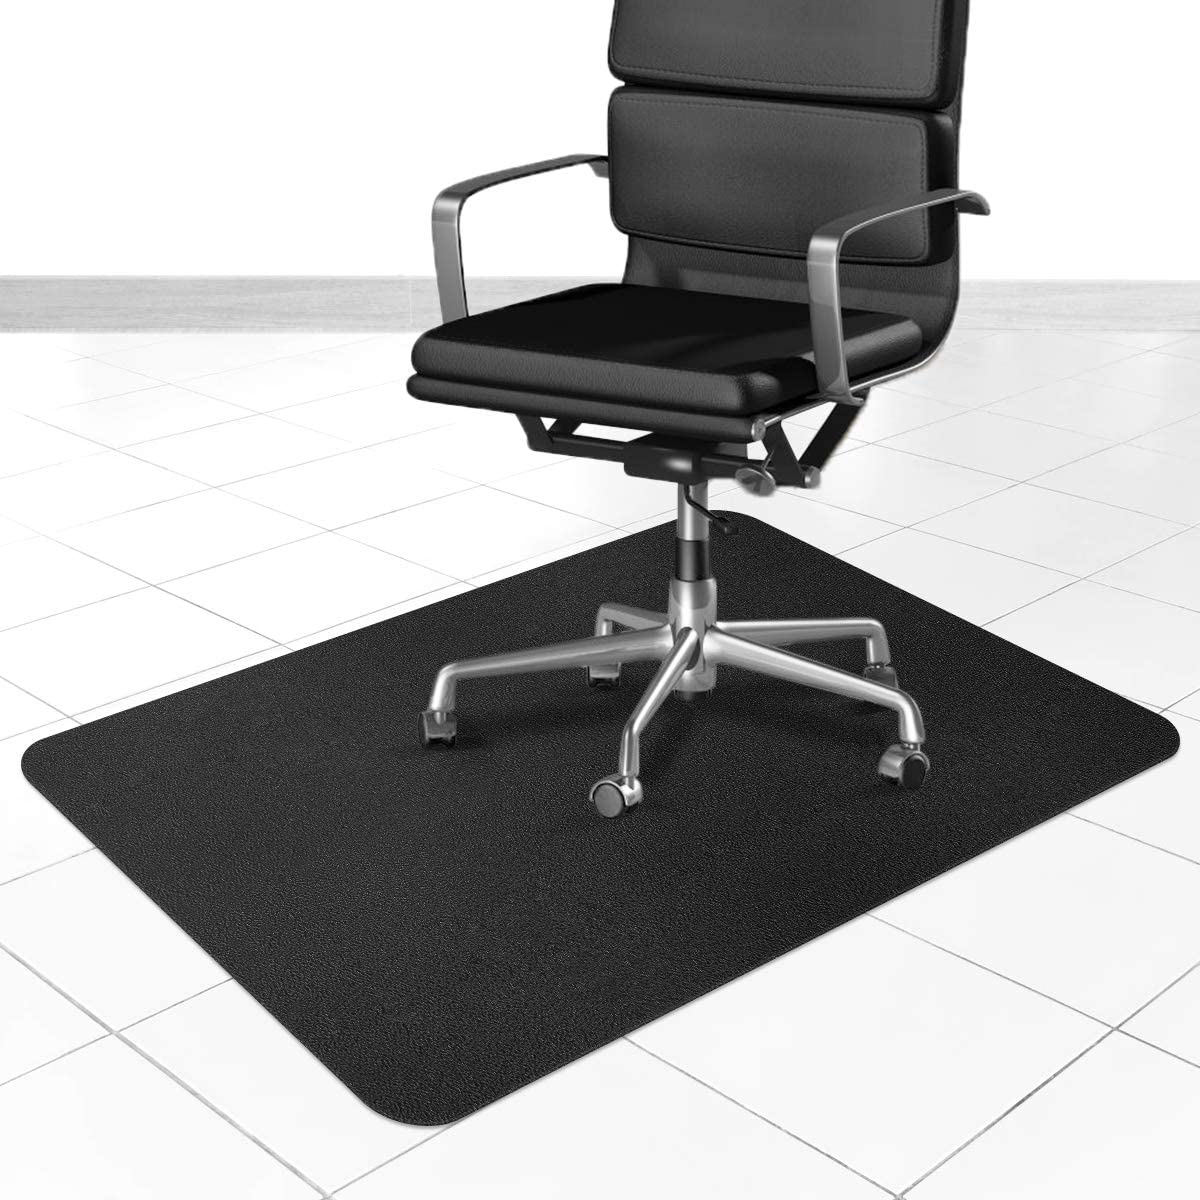 Office Chair Mat for Hardwood and Tile Floor, 36x48 inches Straight Edge Rectangular Sturdy Multi-Purpose Polyethylene + EVA Desk Chair Mat, Anti-Slip, Non-Toxic Plastic Protector